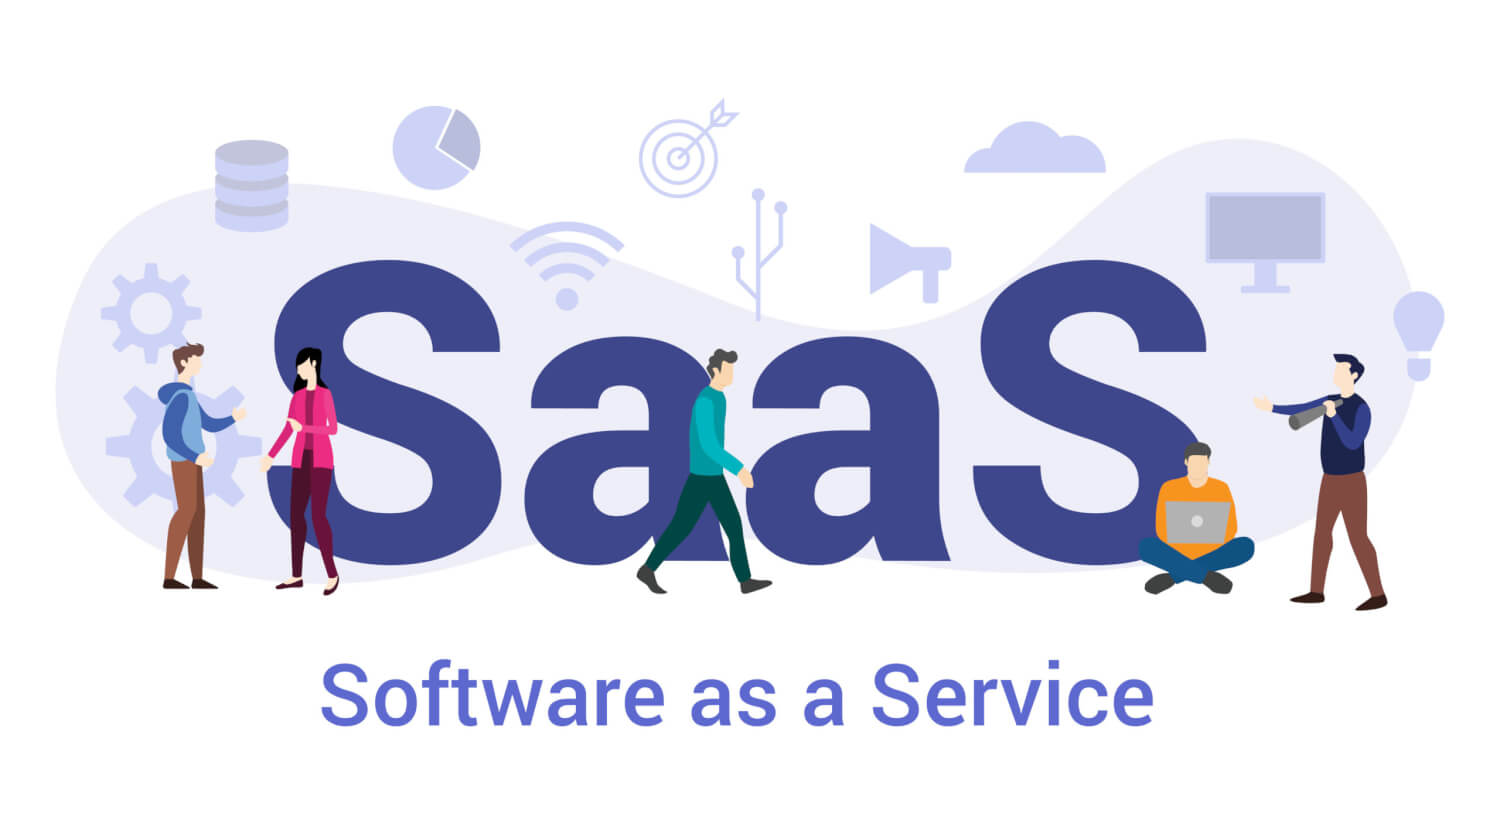 saas software as a service concept with big word or text and team people with modern flat style - vector